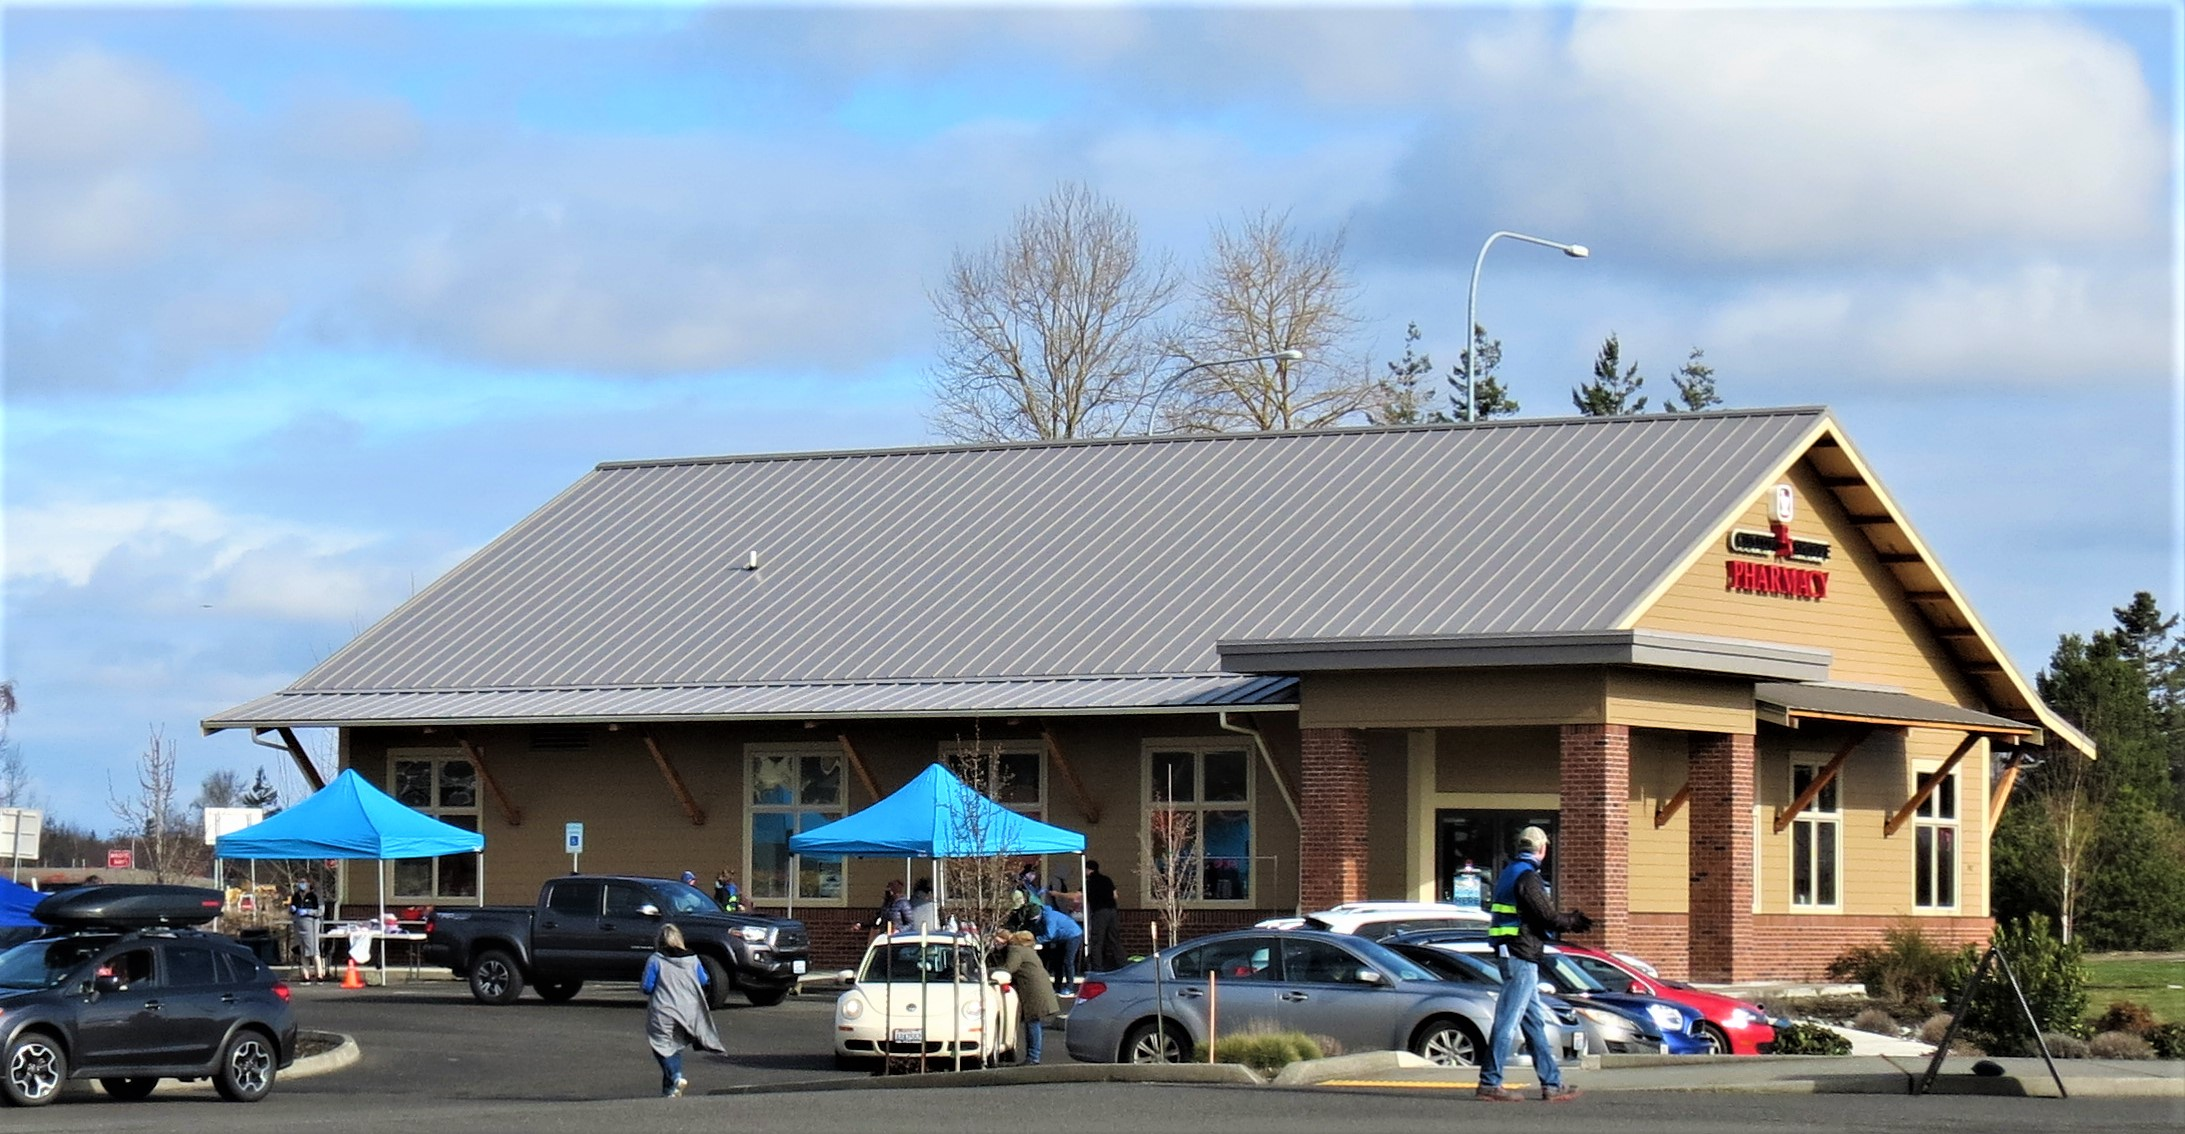 Scene of a COVID-19 immunization clinic for Bellingham Public Schools staff at Custom Rx Shoppe Pharmacy (March 6, 2021). Photo: My Ferndale News